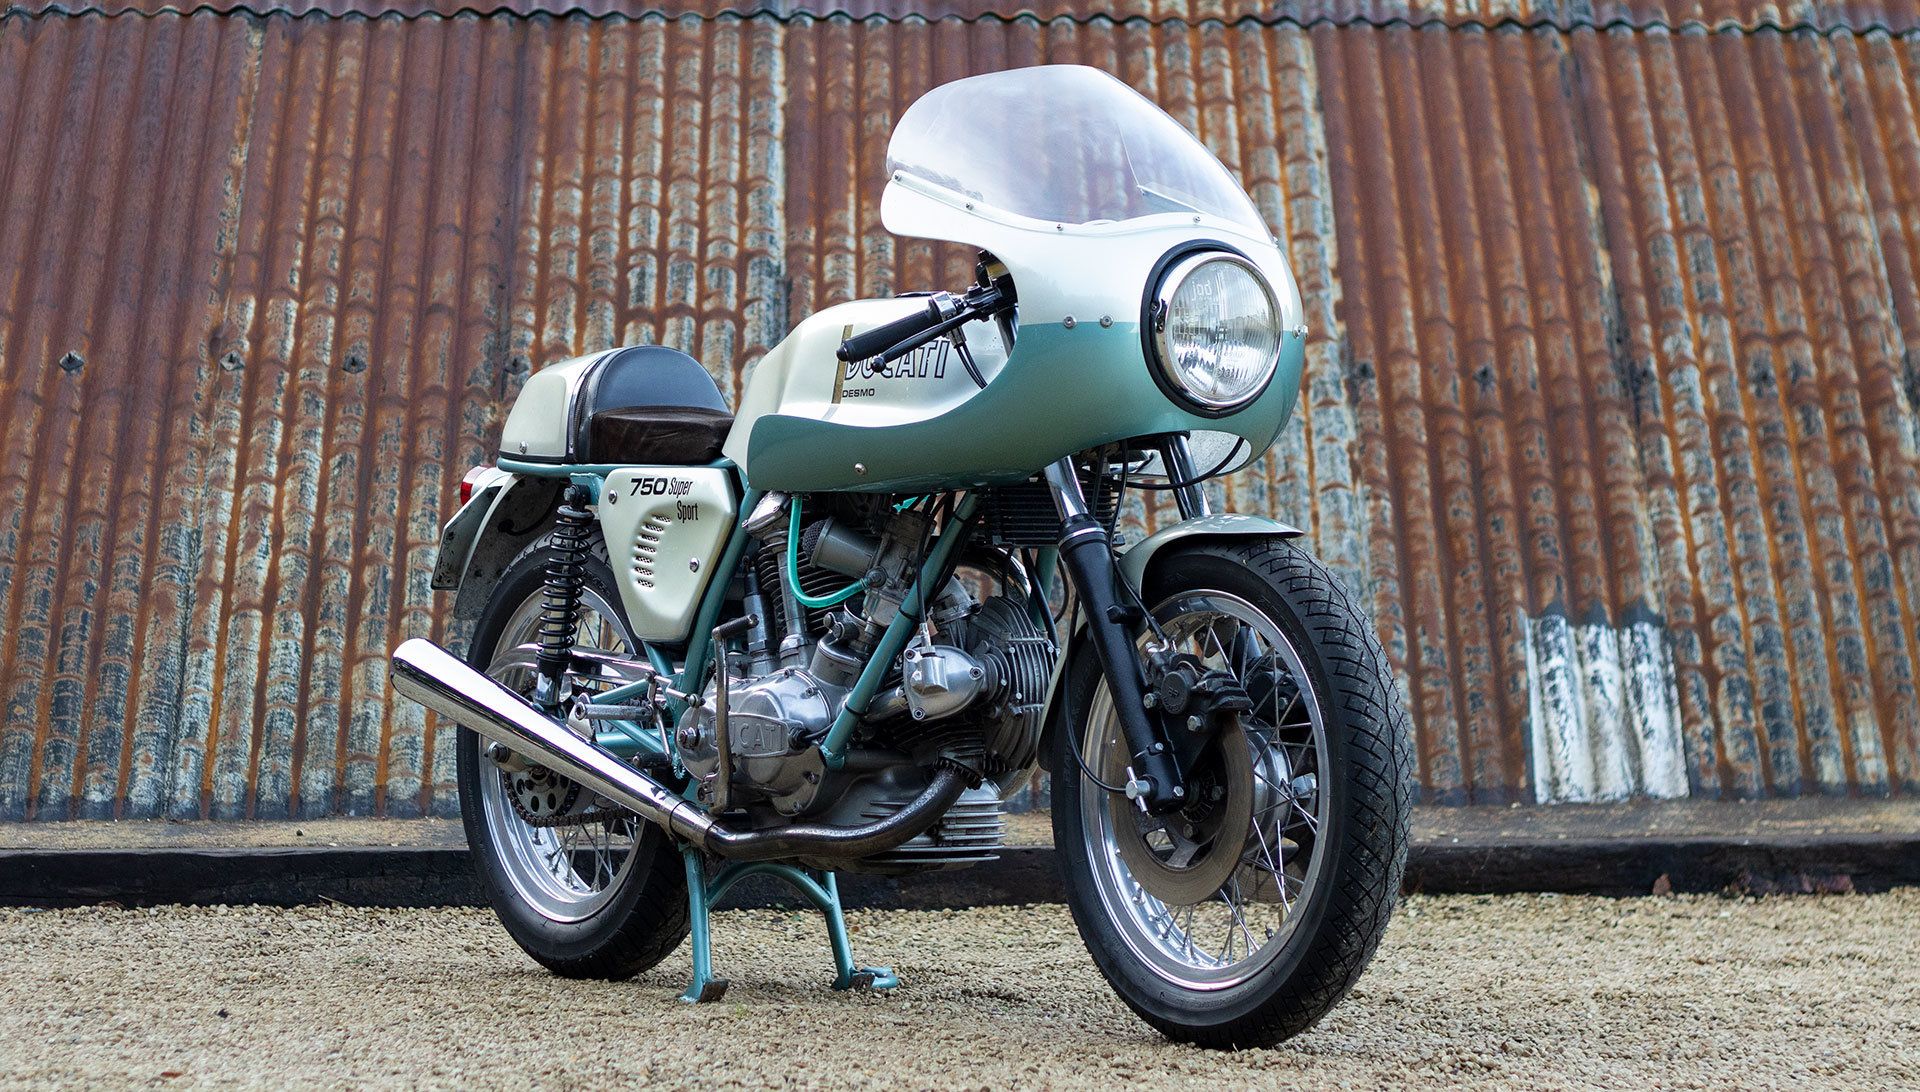 1974 Ducati 750 SS 'Green Frame' - Genuine with Falloon Report For Sale (picture 5 of 17)